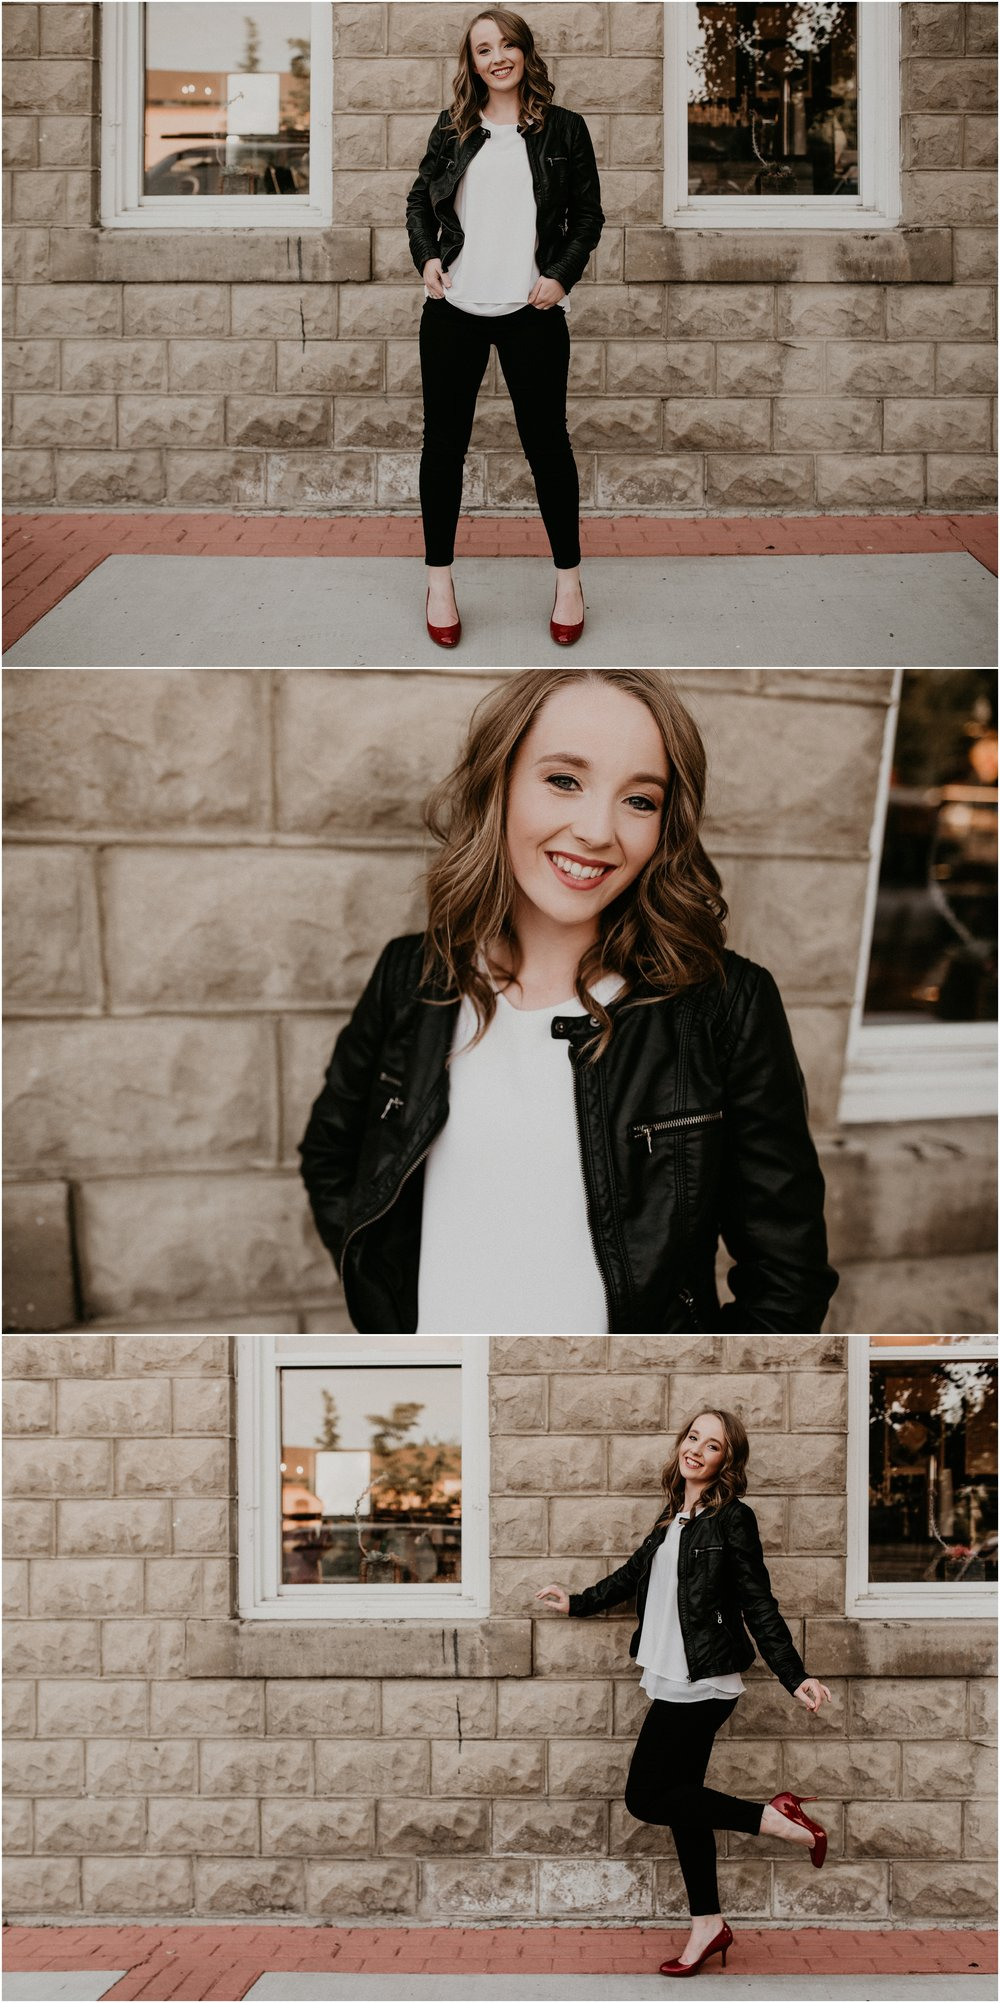 Boise Senior Photography Makayla Madden Photography Eagle Idaho Brim Coffee House Urban Senior Pictures Fun Raw Real Summer